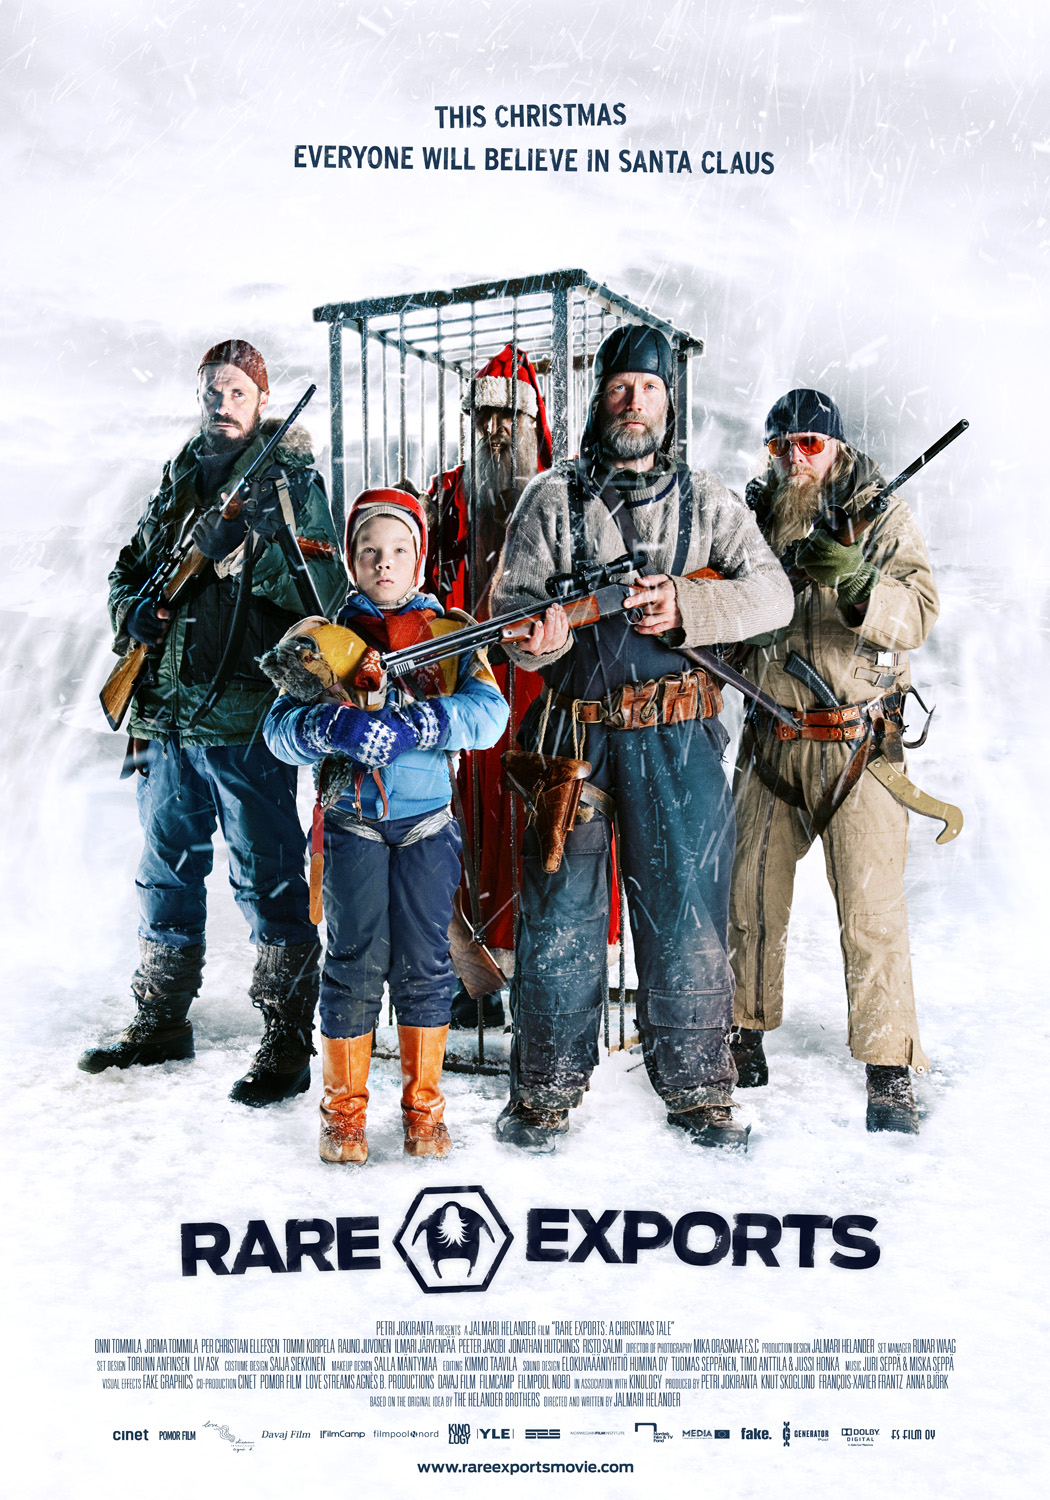 Download the Rare Exports official poster. (600 kB